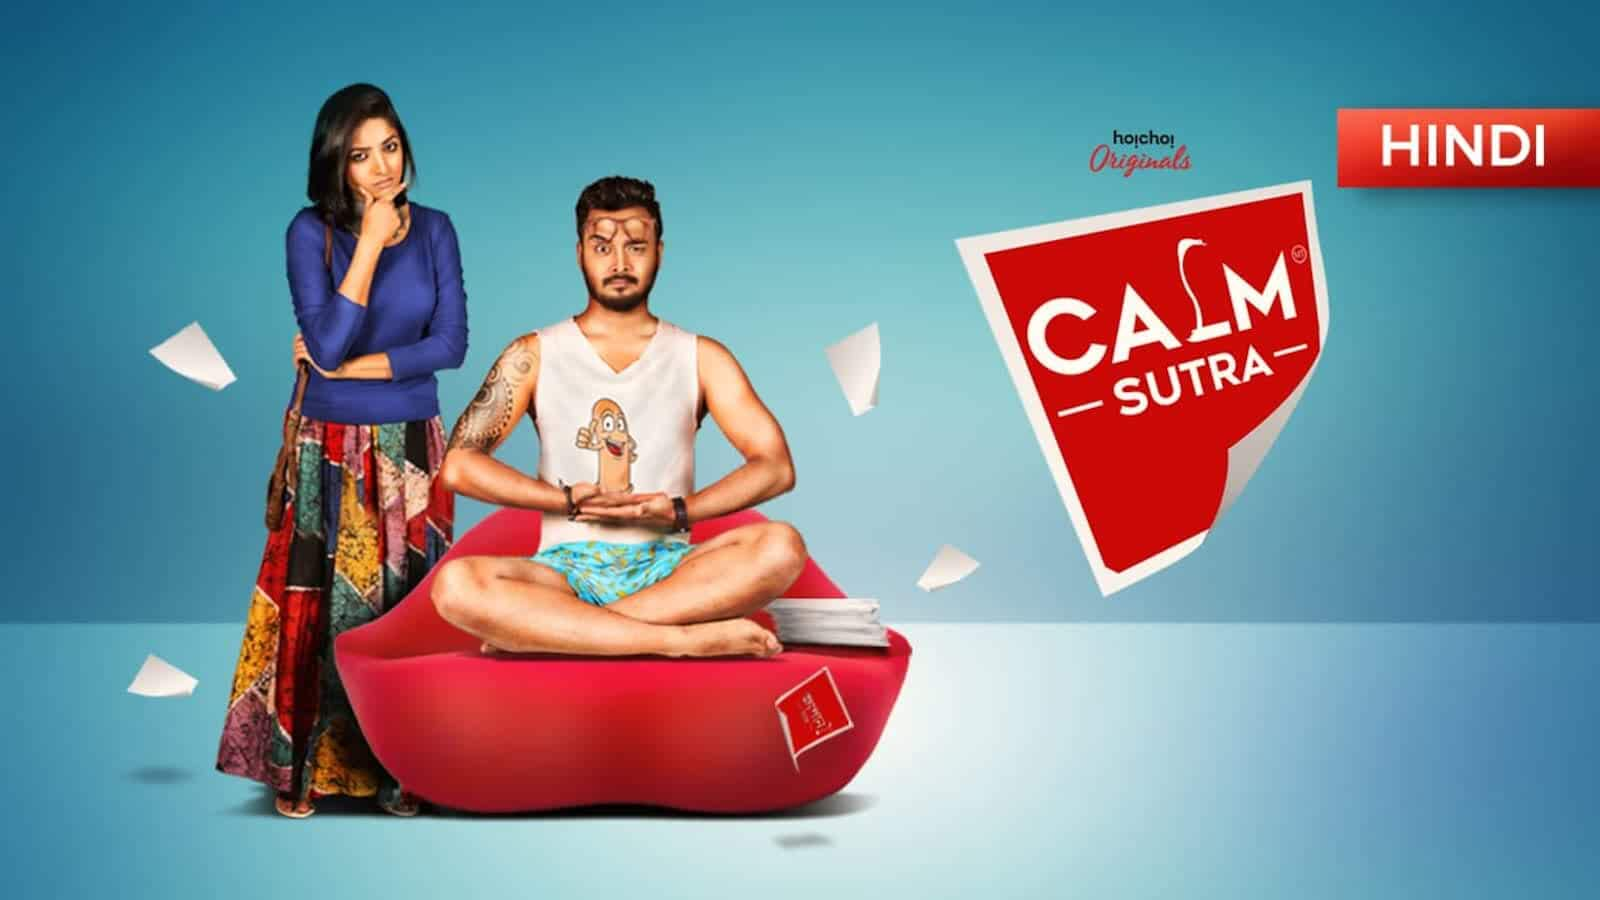 Calm Sutra (Japani Toy) (2019) Hindi Season 1 Complete 480p UNRATED HEVC HDRip x265 Hot [300MB]